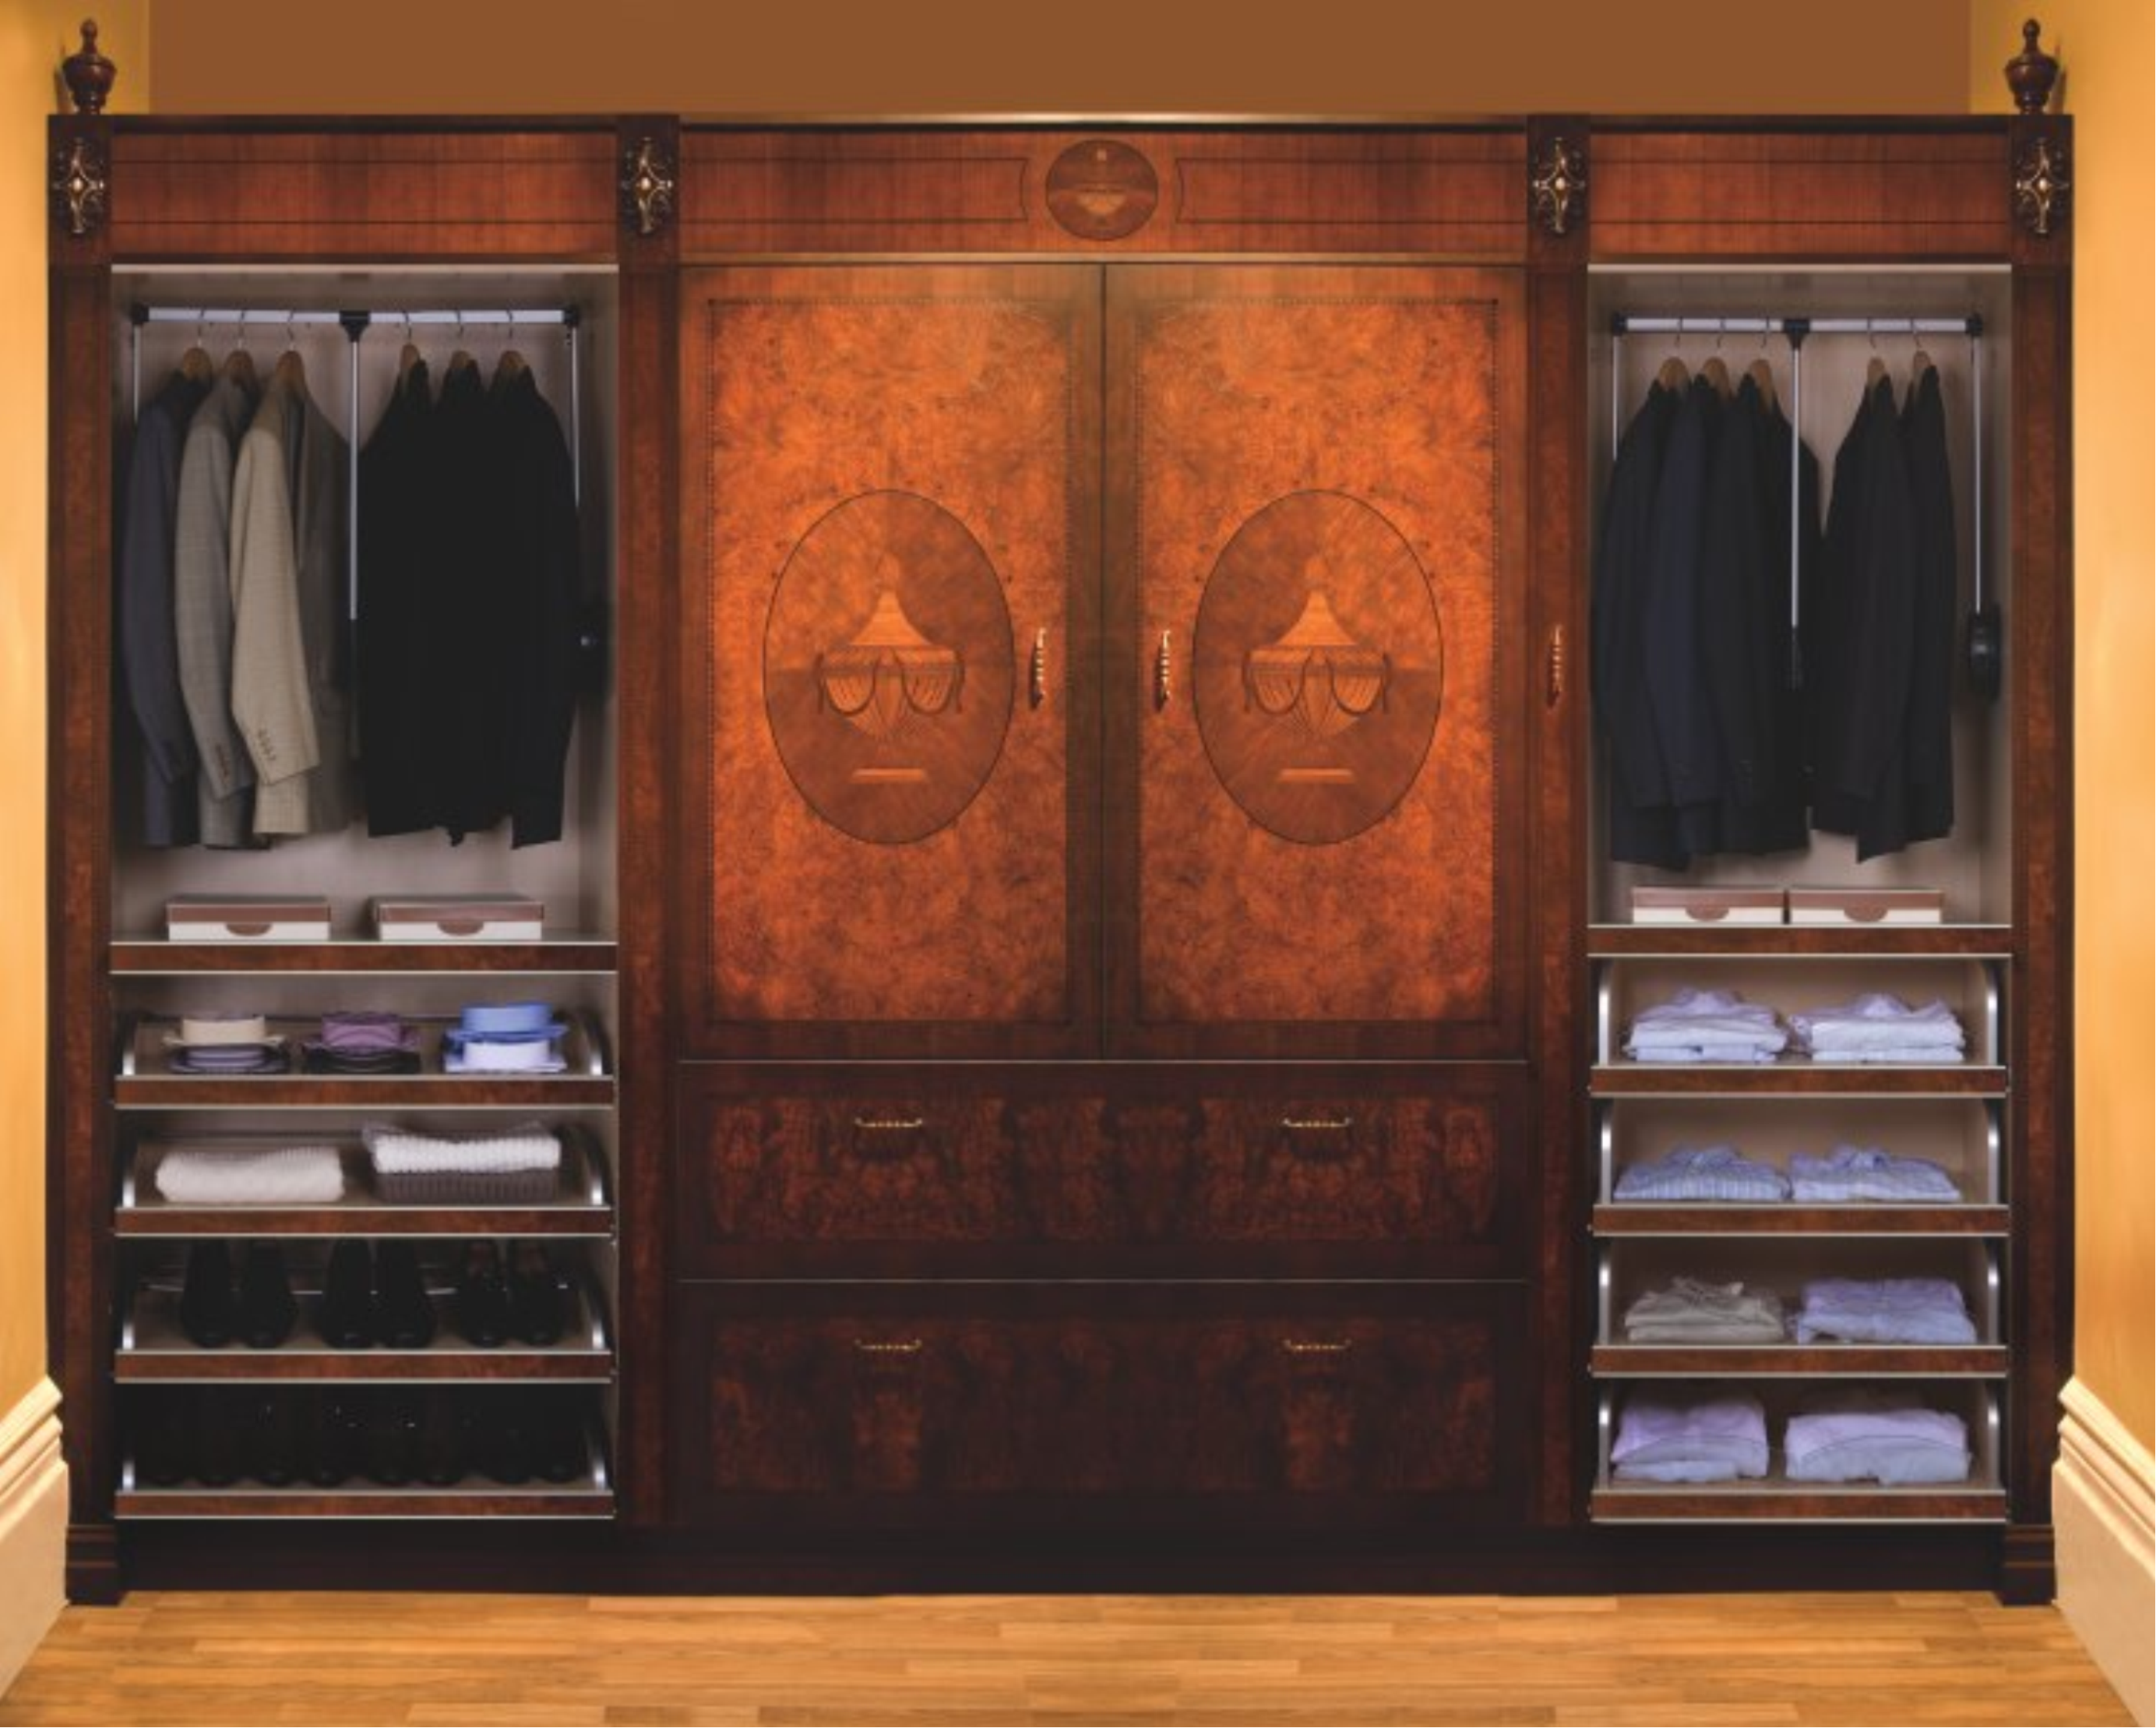 Walk In Closet Designs For Every Personality Type photo - 6